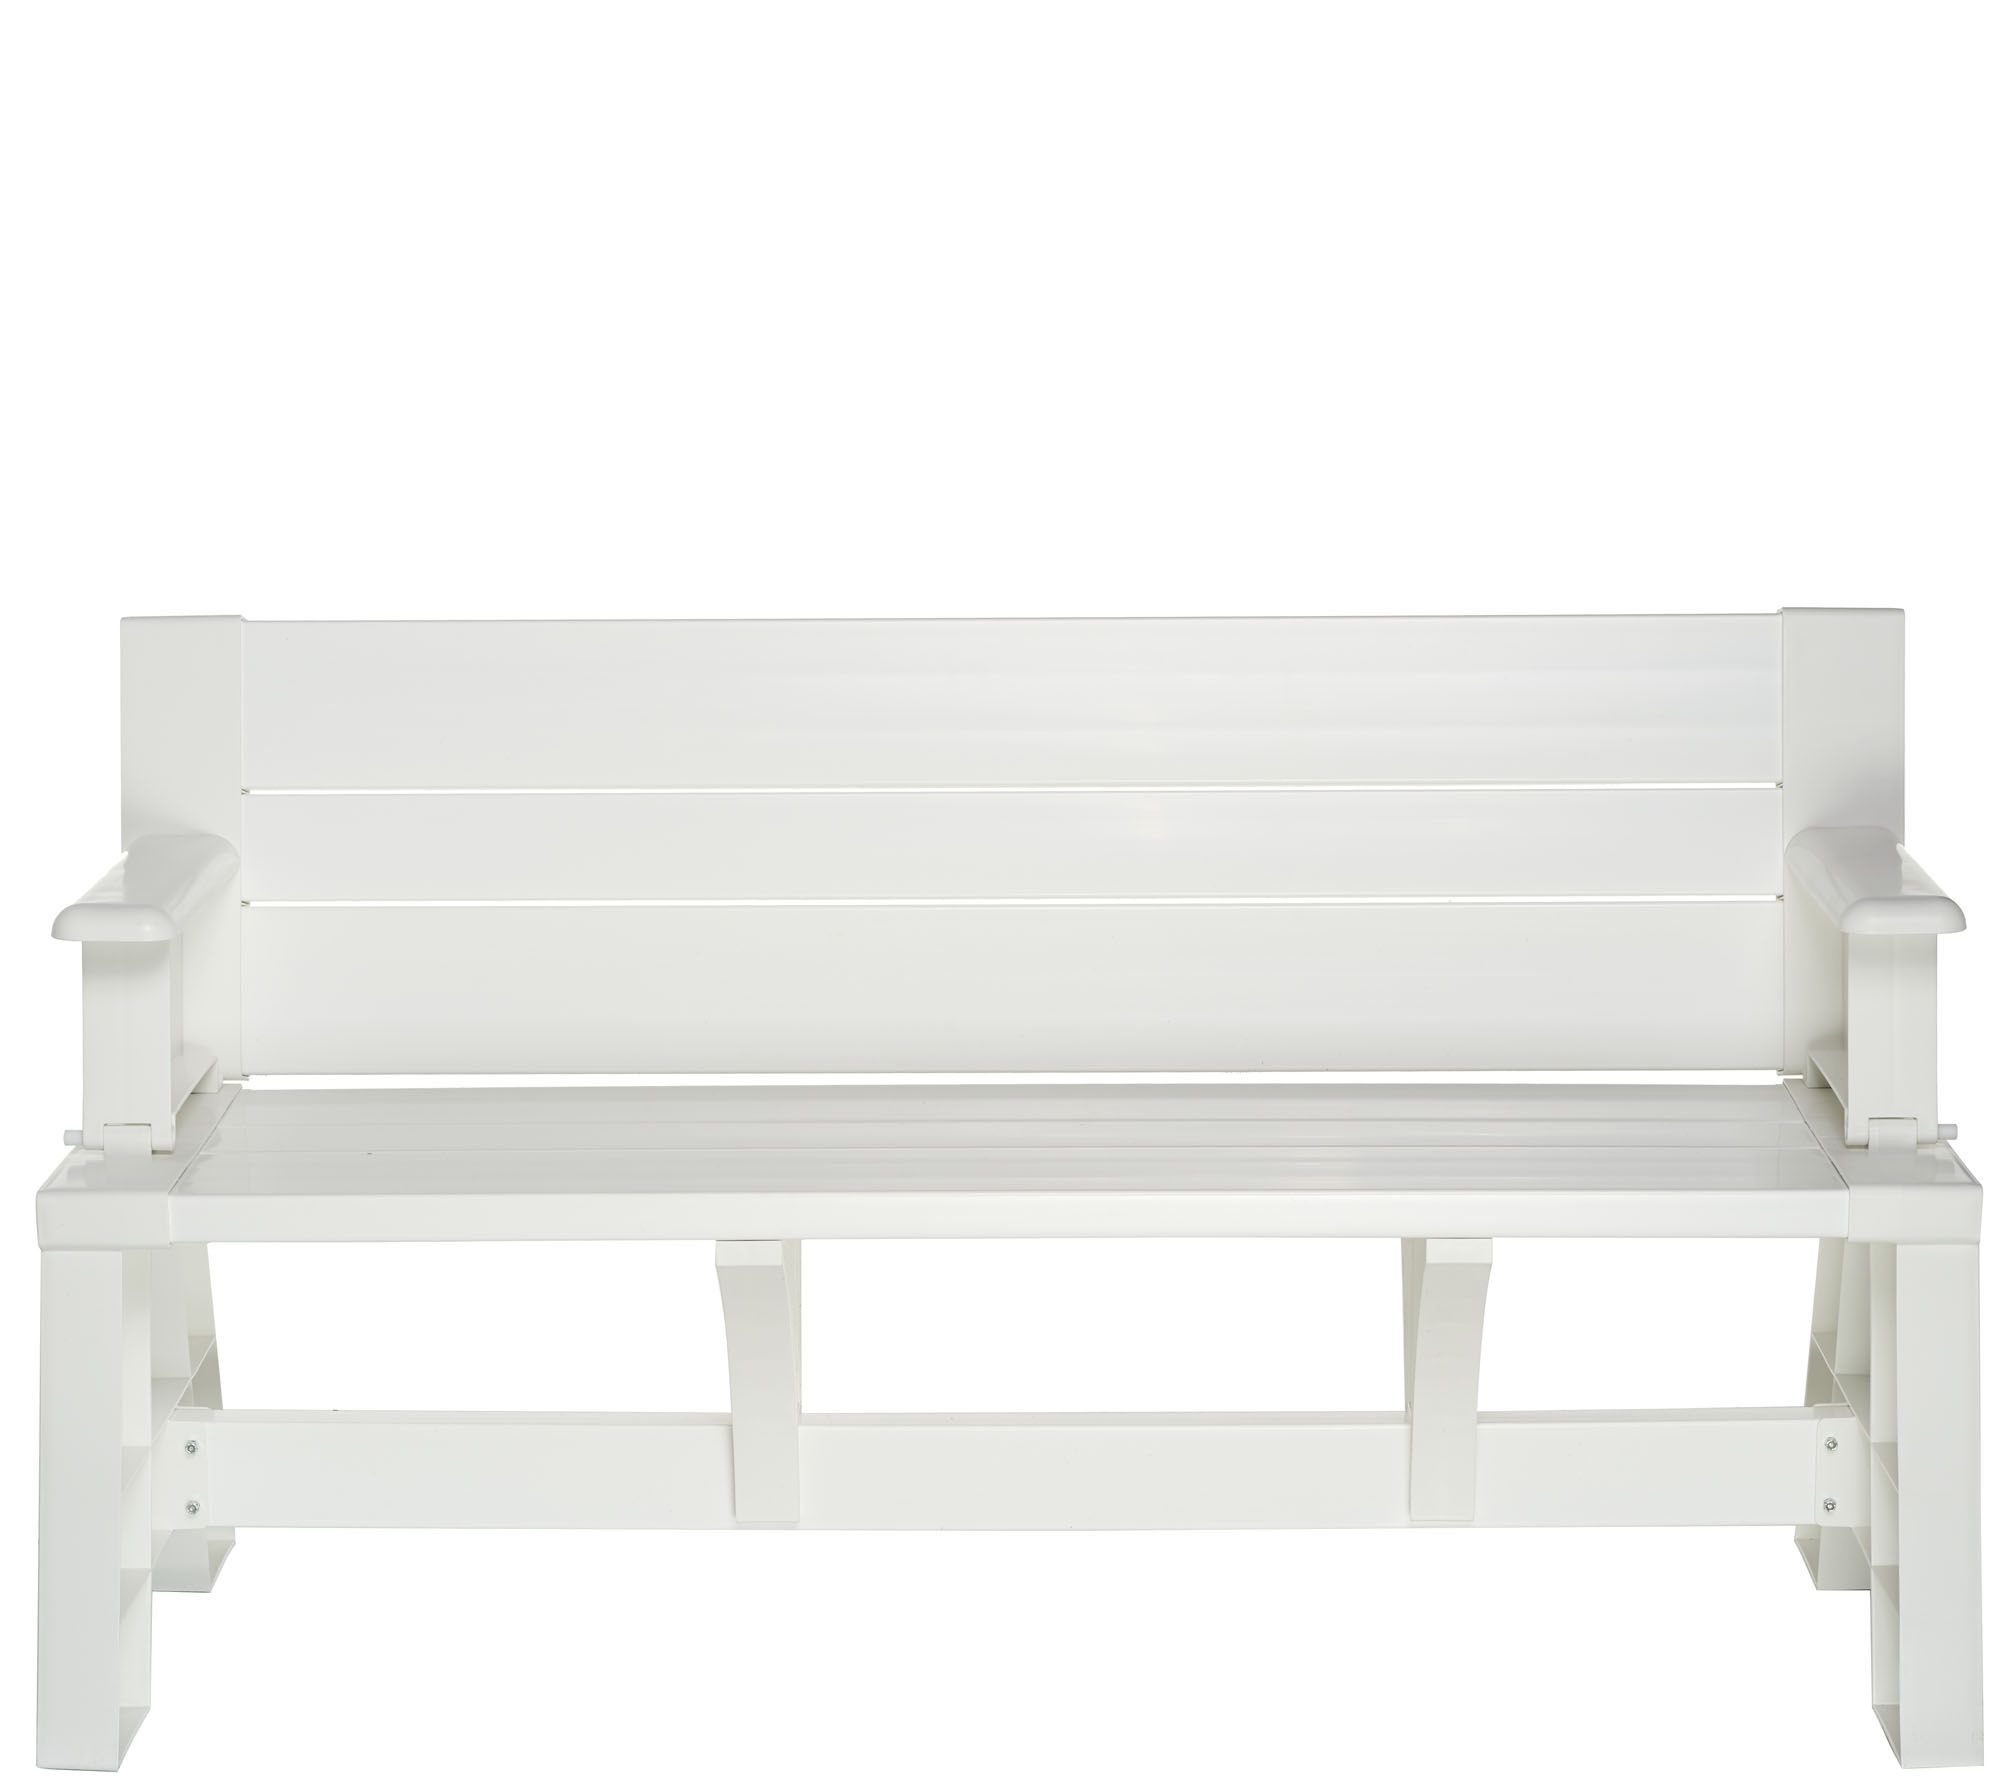 Garden Furniture Qvc convert-a-bench basic color outdoor 2-in-1 bench-to-table w/5 year